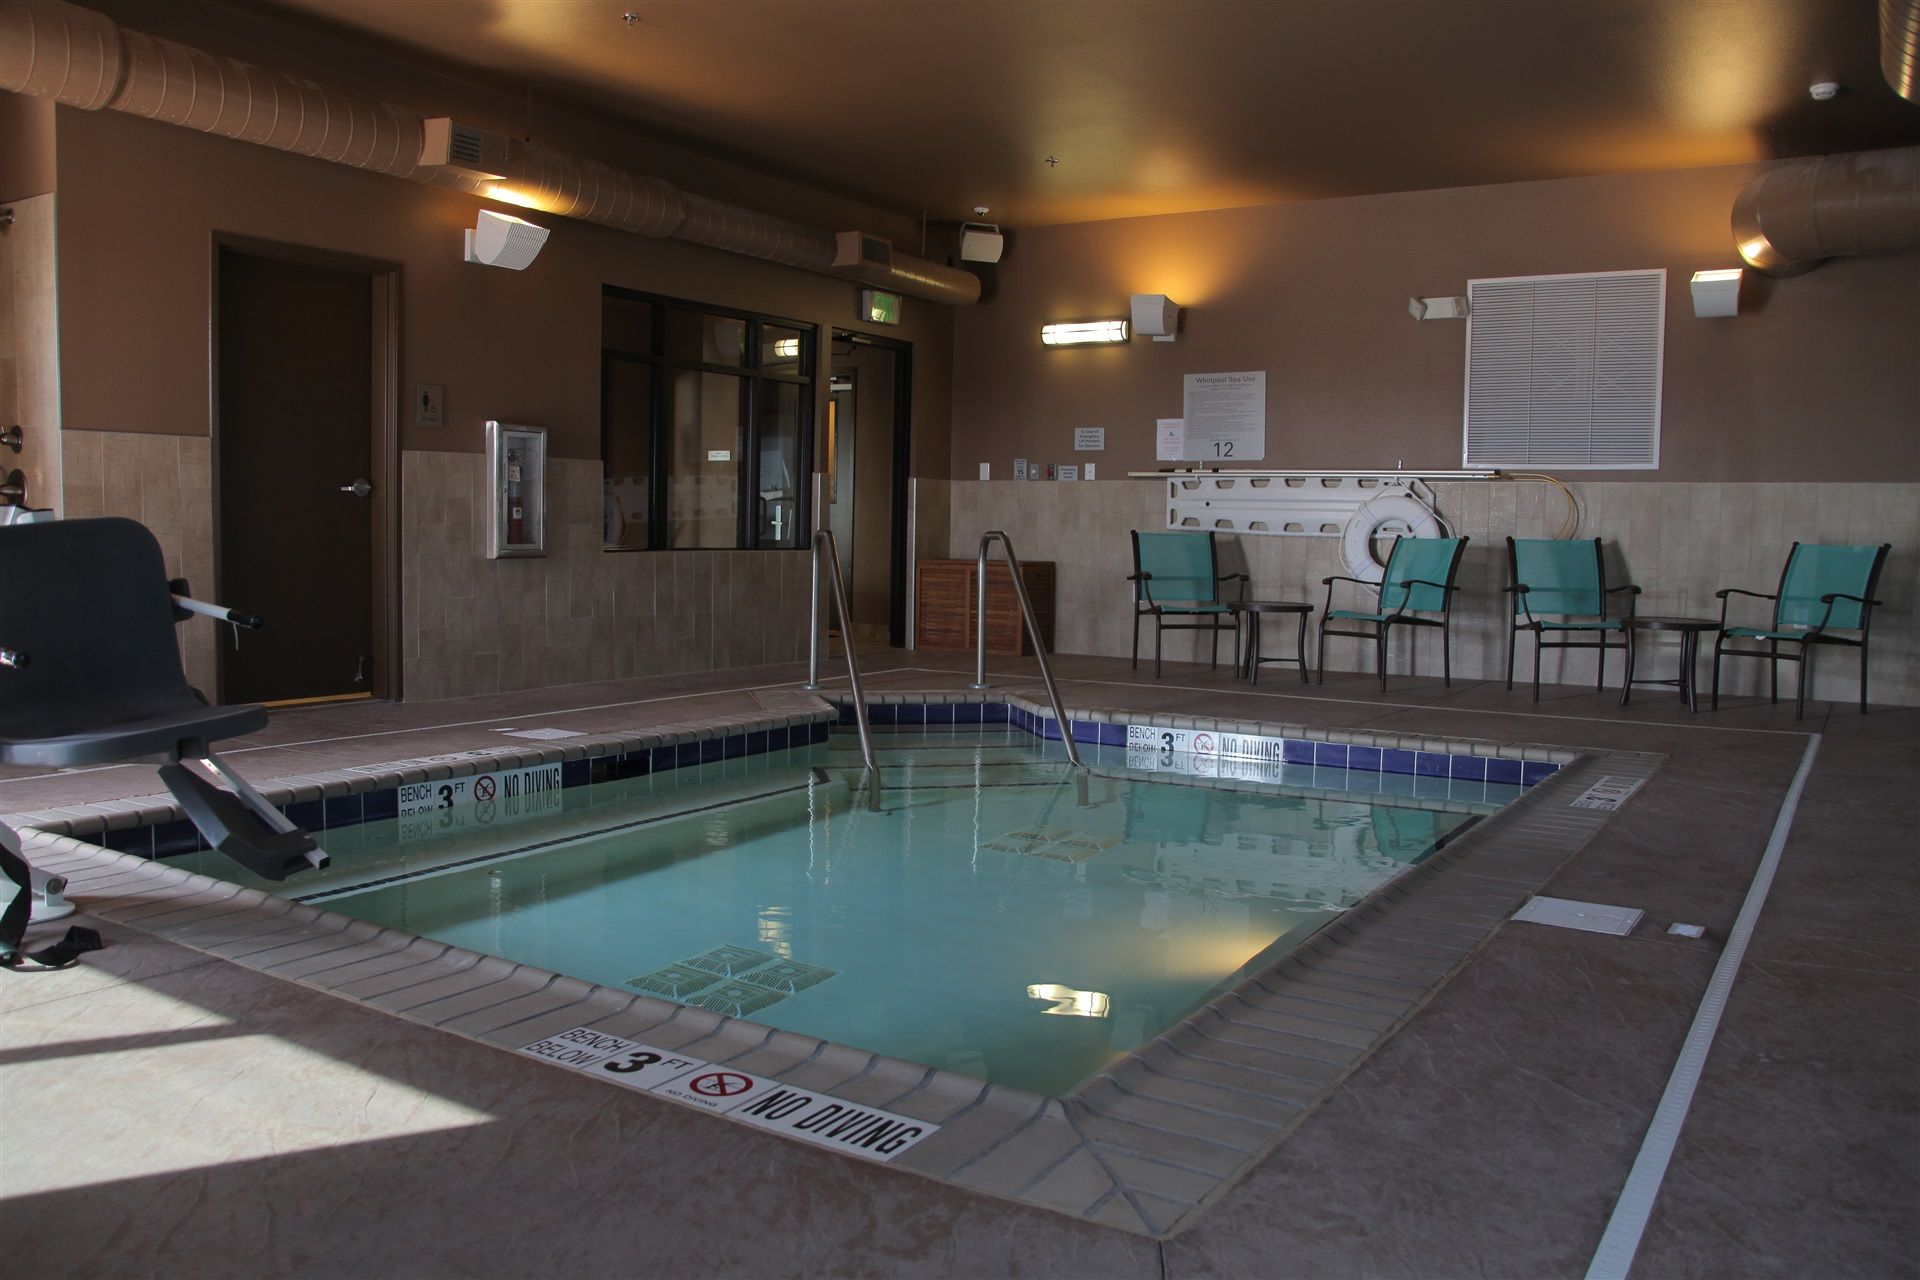 Pool area in the Teddy's Residential Suites in Watford City, ND